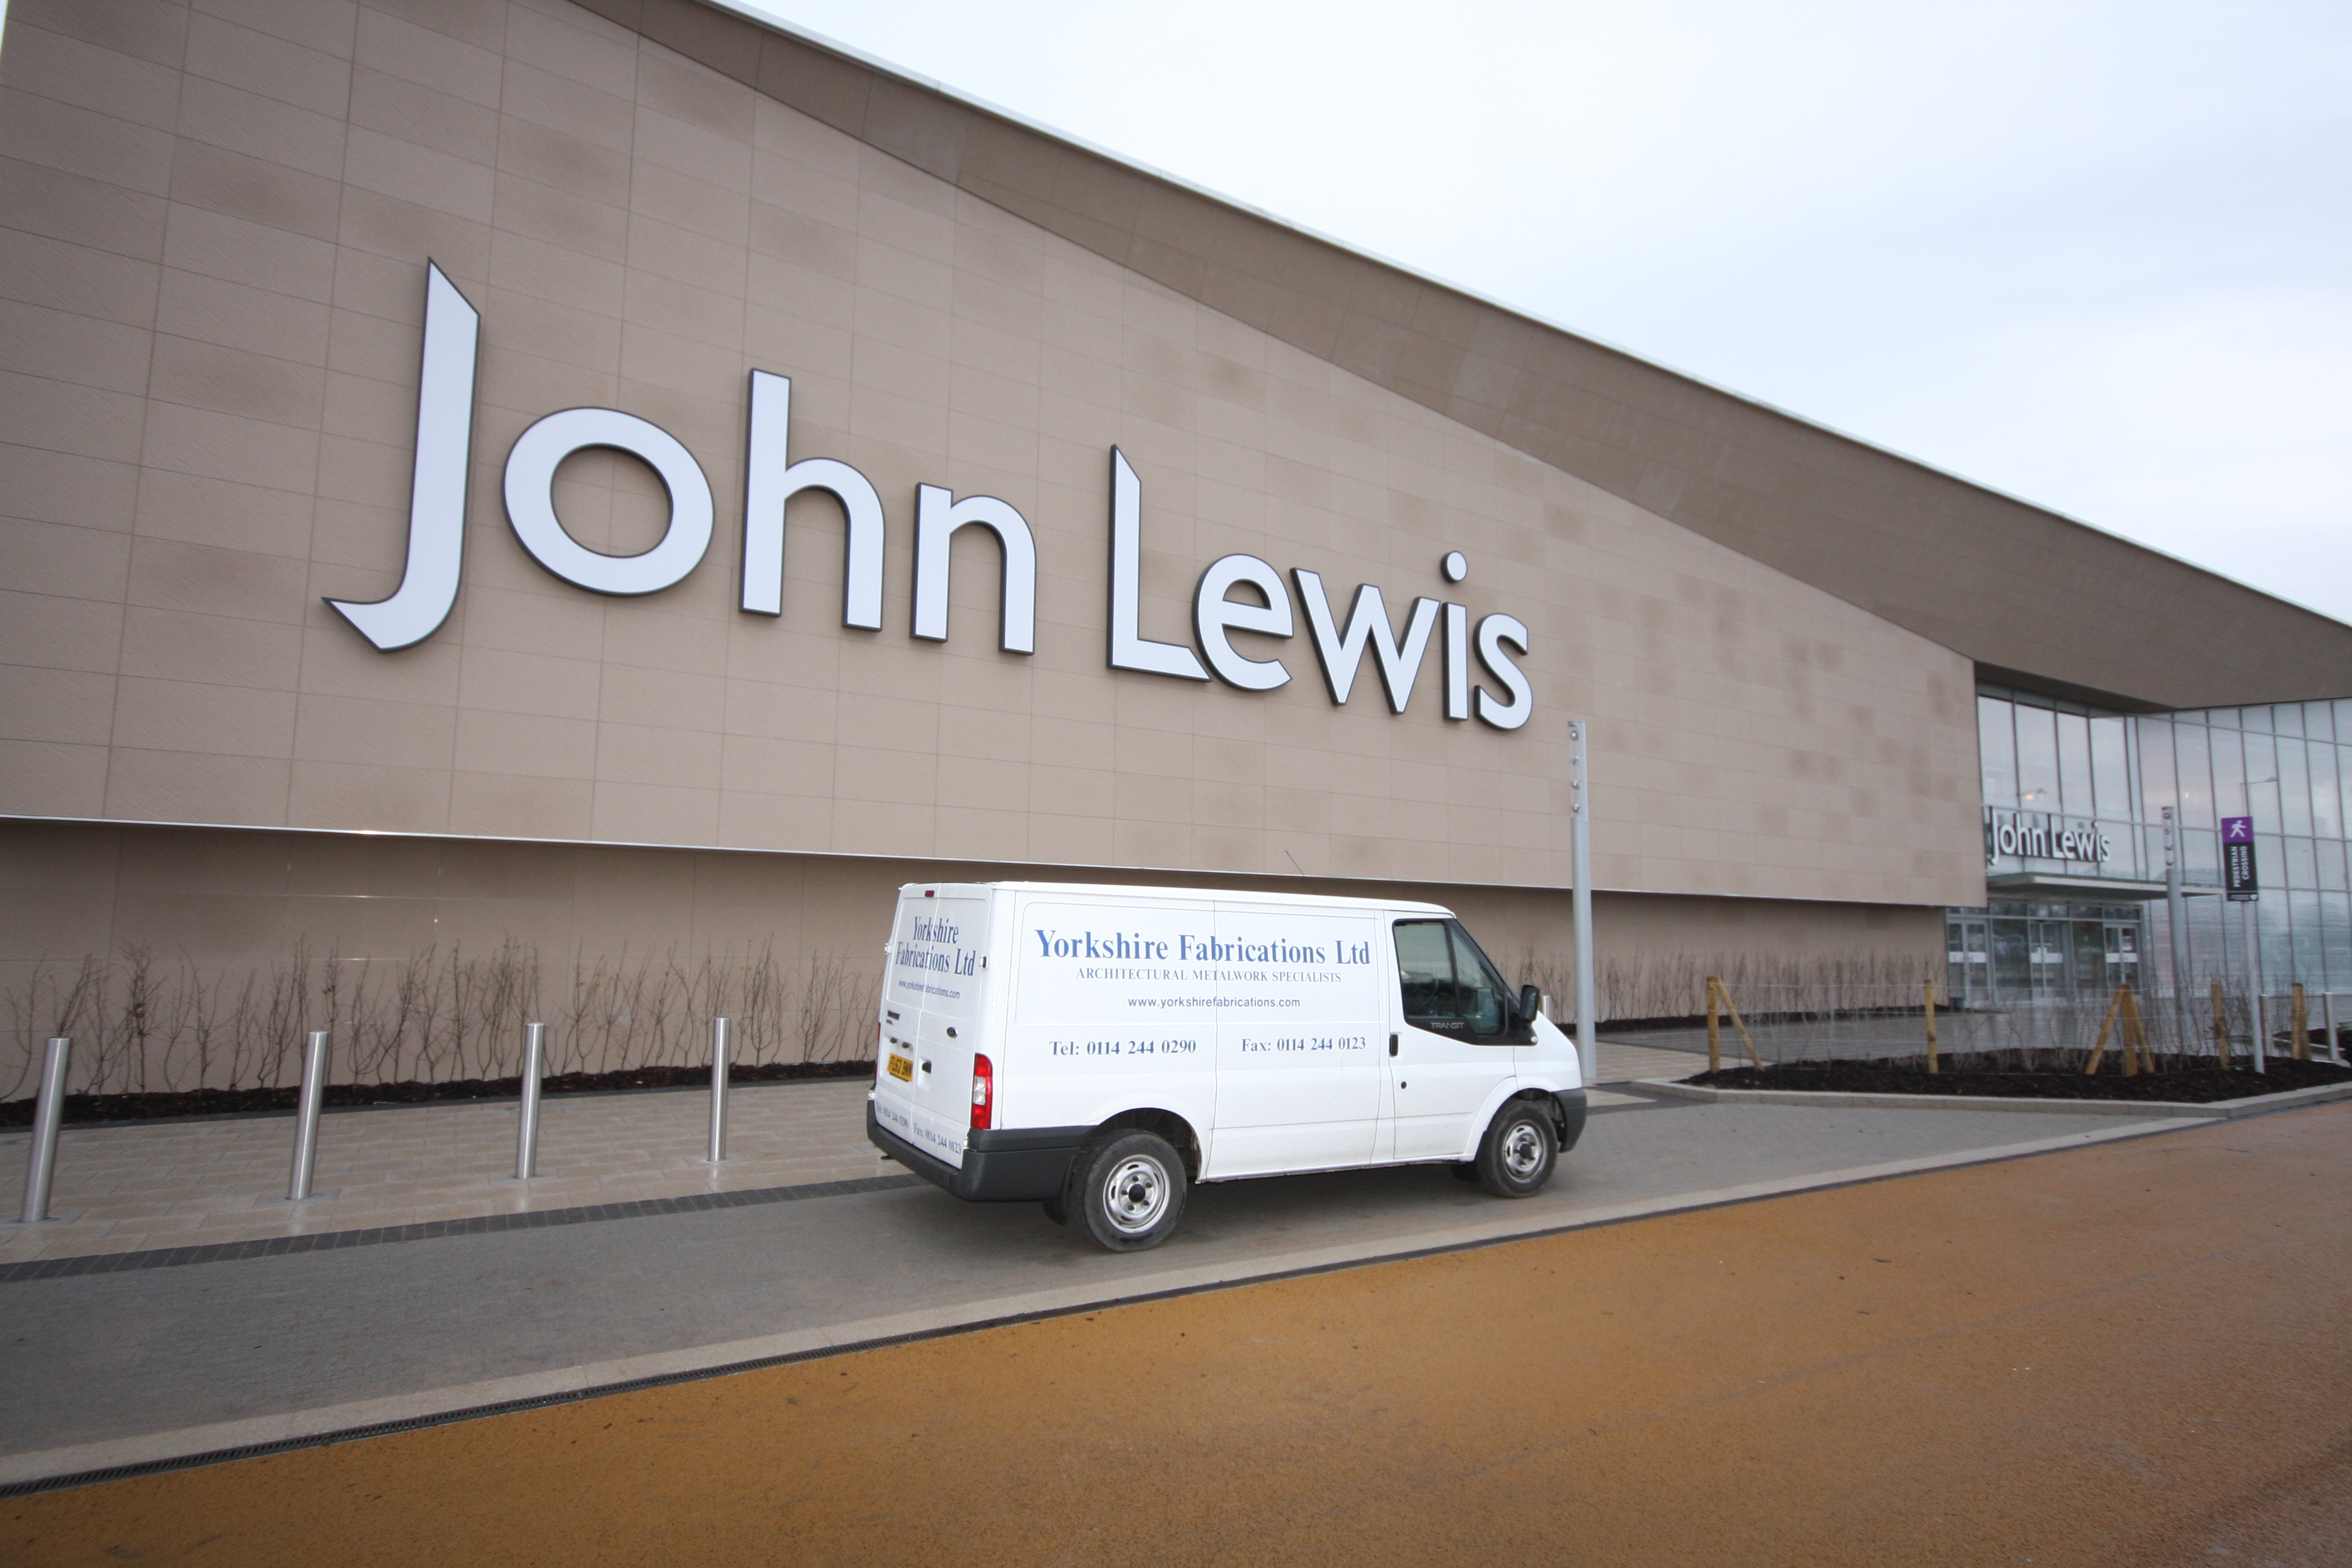 York Retail Centre - John Lewis Shop